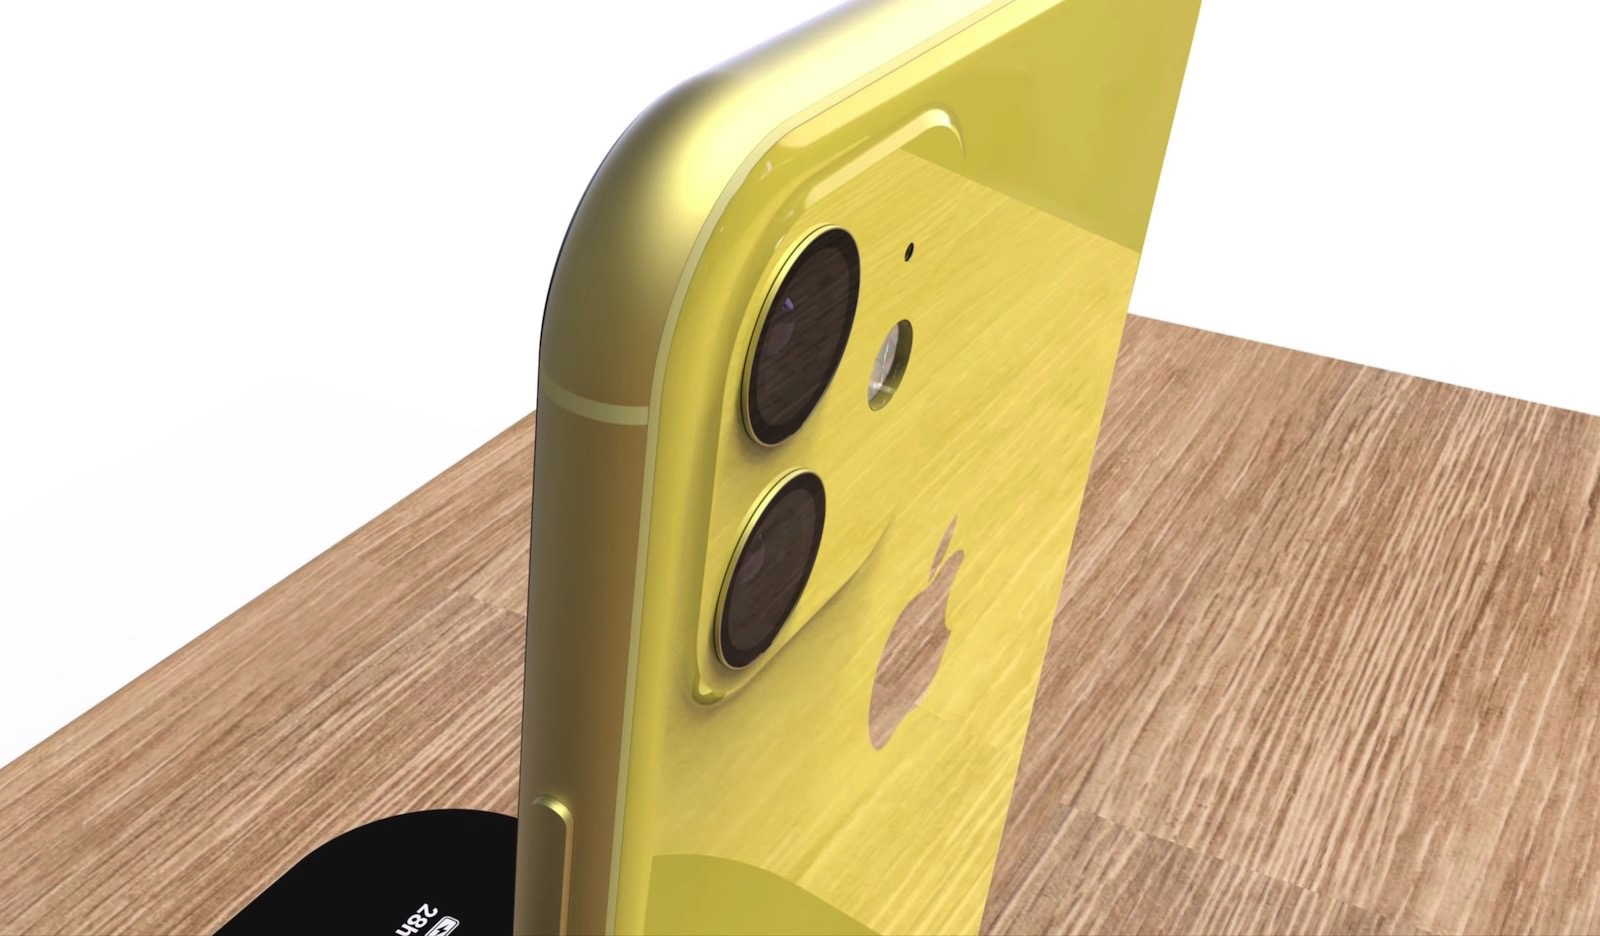 Iphone xr 2019 concept image